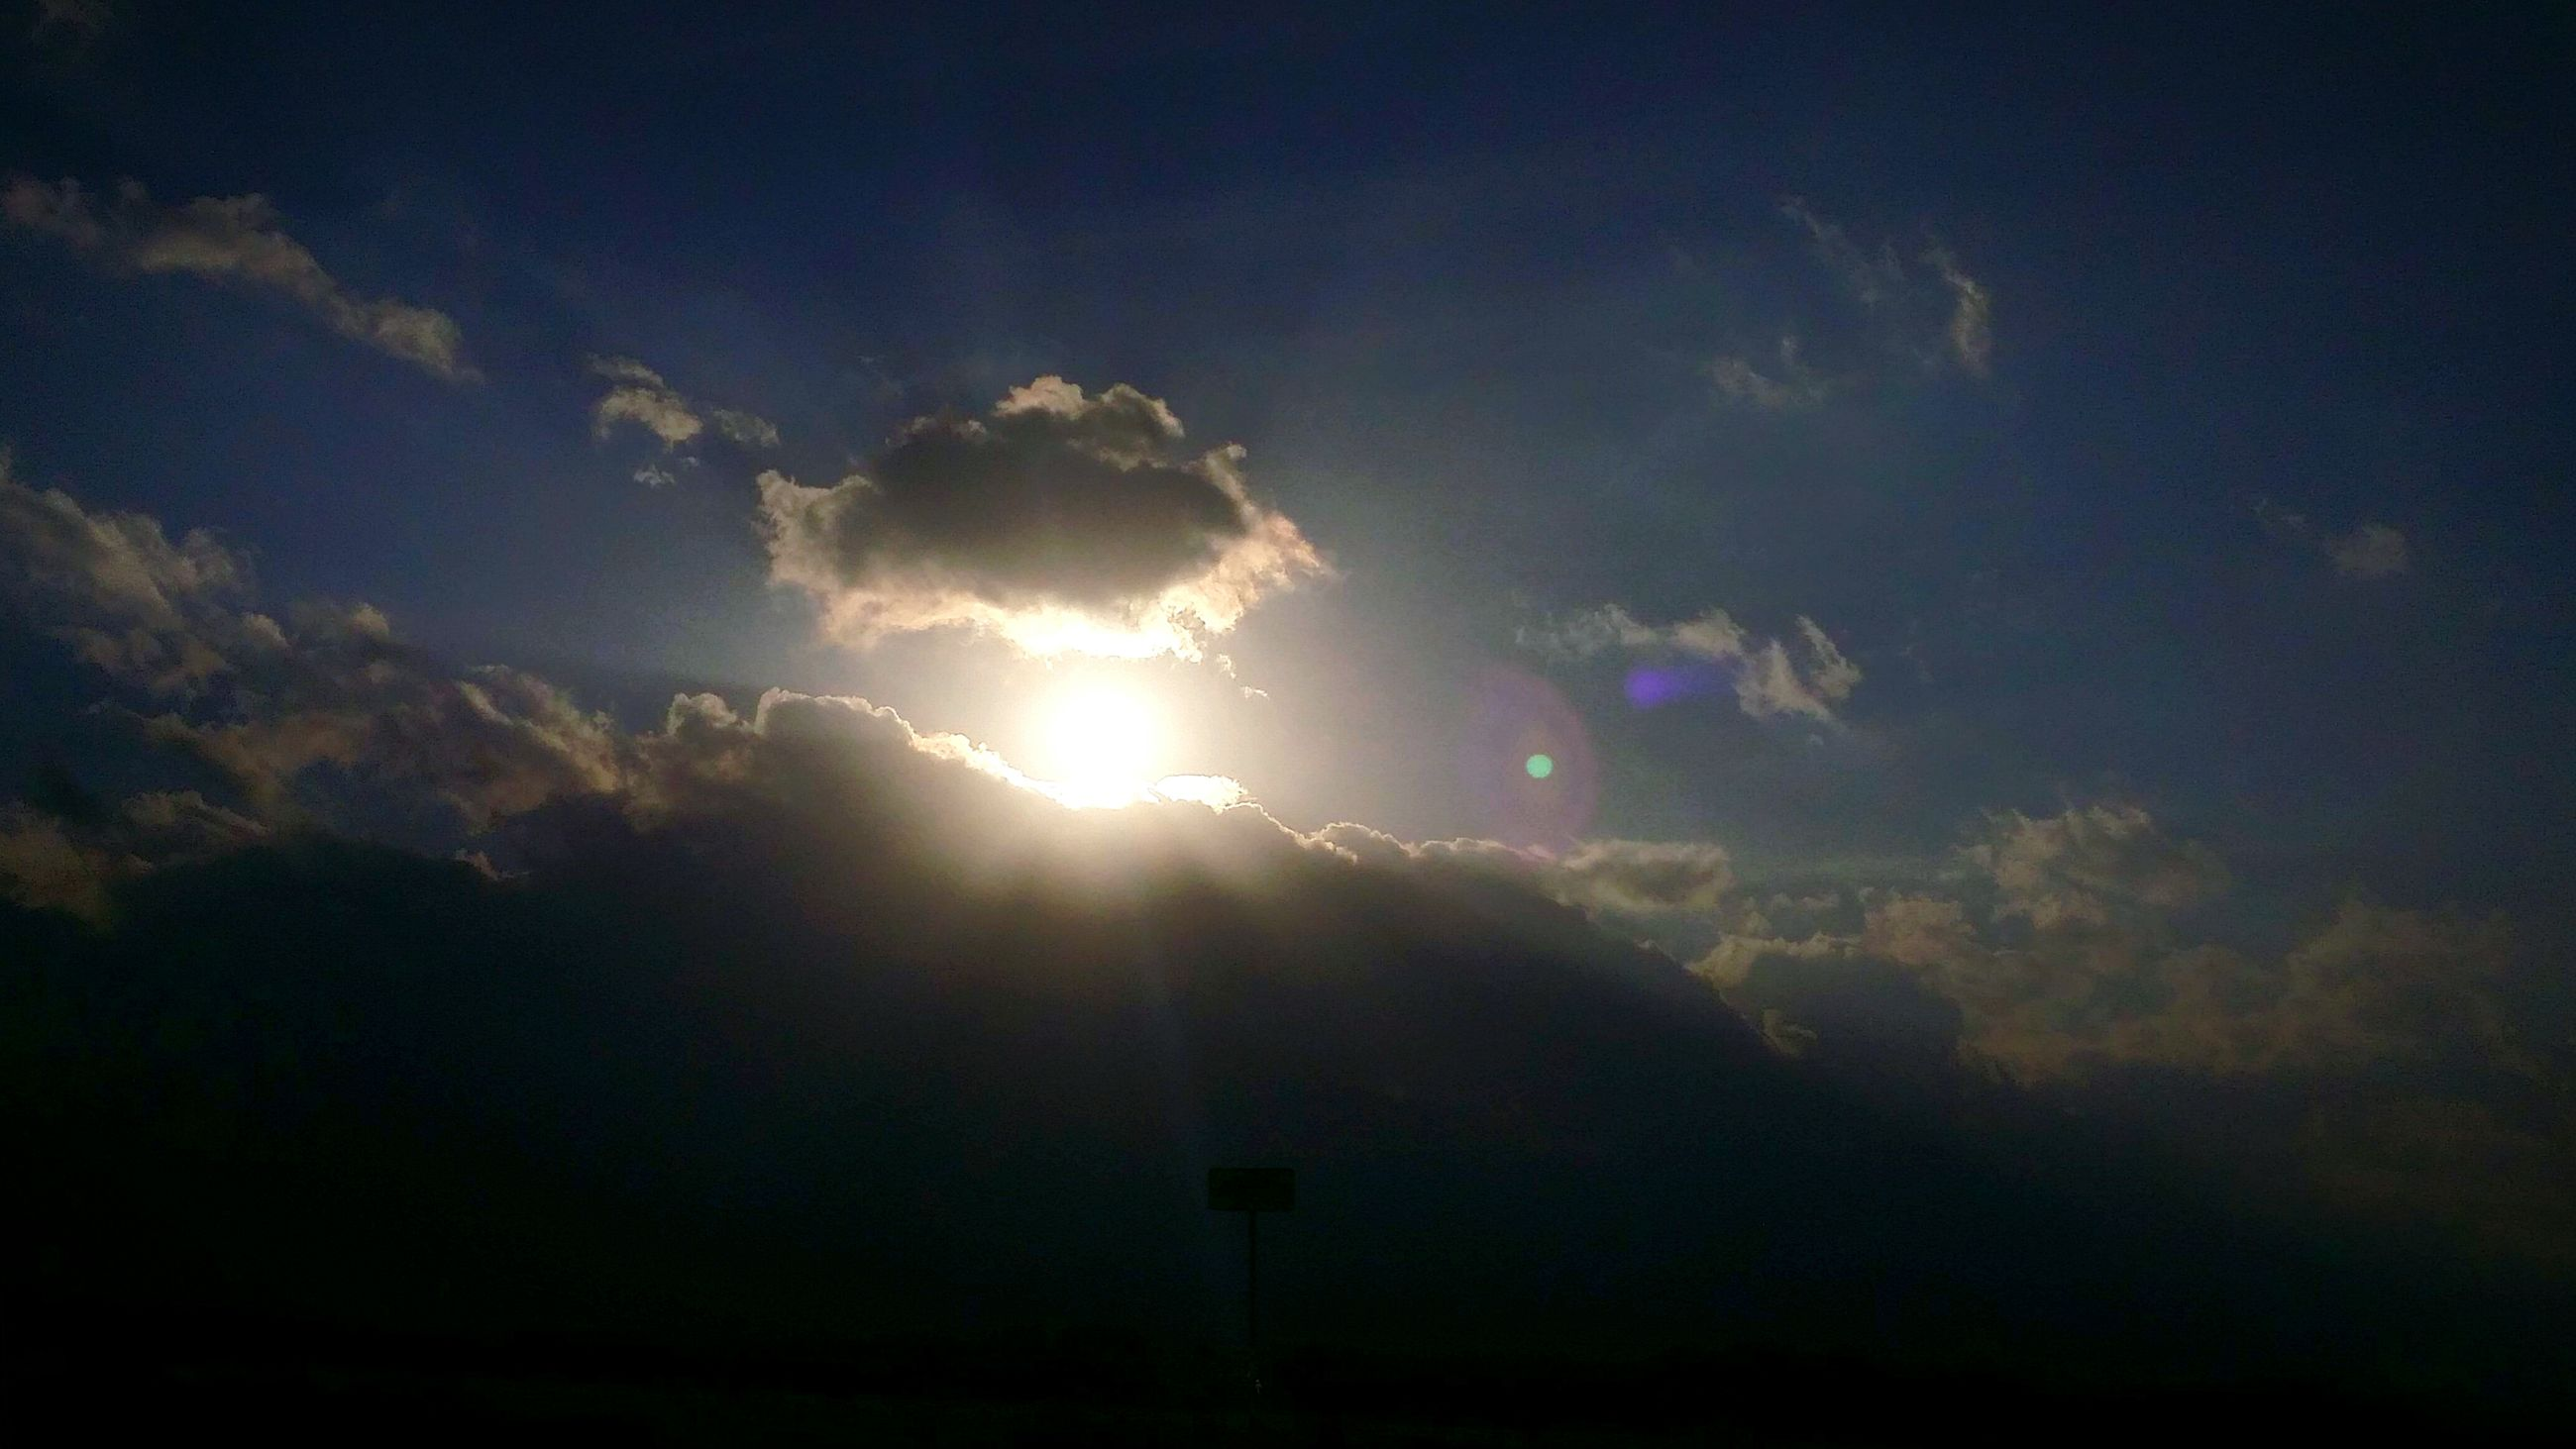 sky, sun, sunbeam, cloud - sky, low angle view, sunlight, silhouette, beauty in nature, lens flare, scenics, nature, tranquility, cloud, cloudy, tranquil scene, blue, outdoors, no people, weather, dark